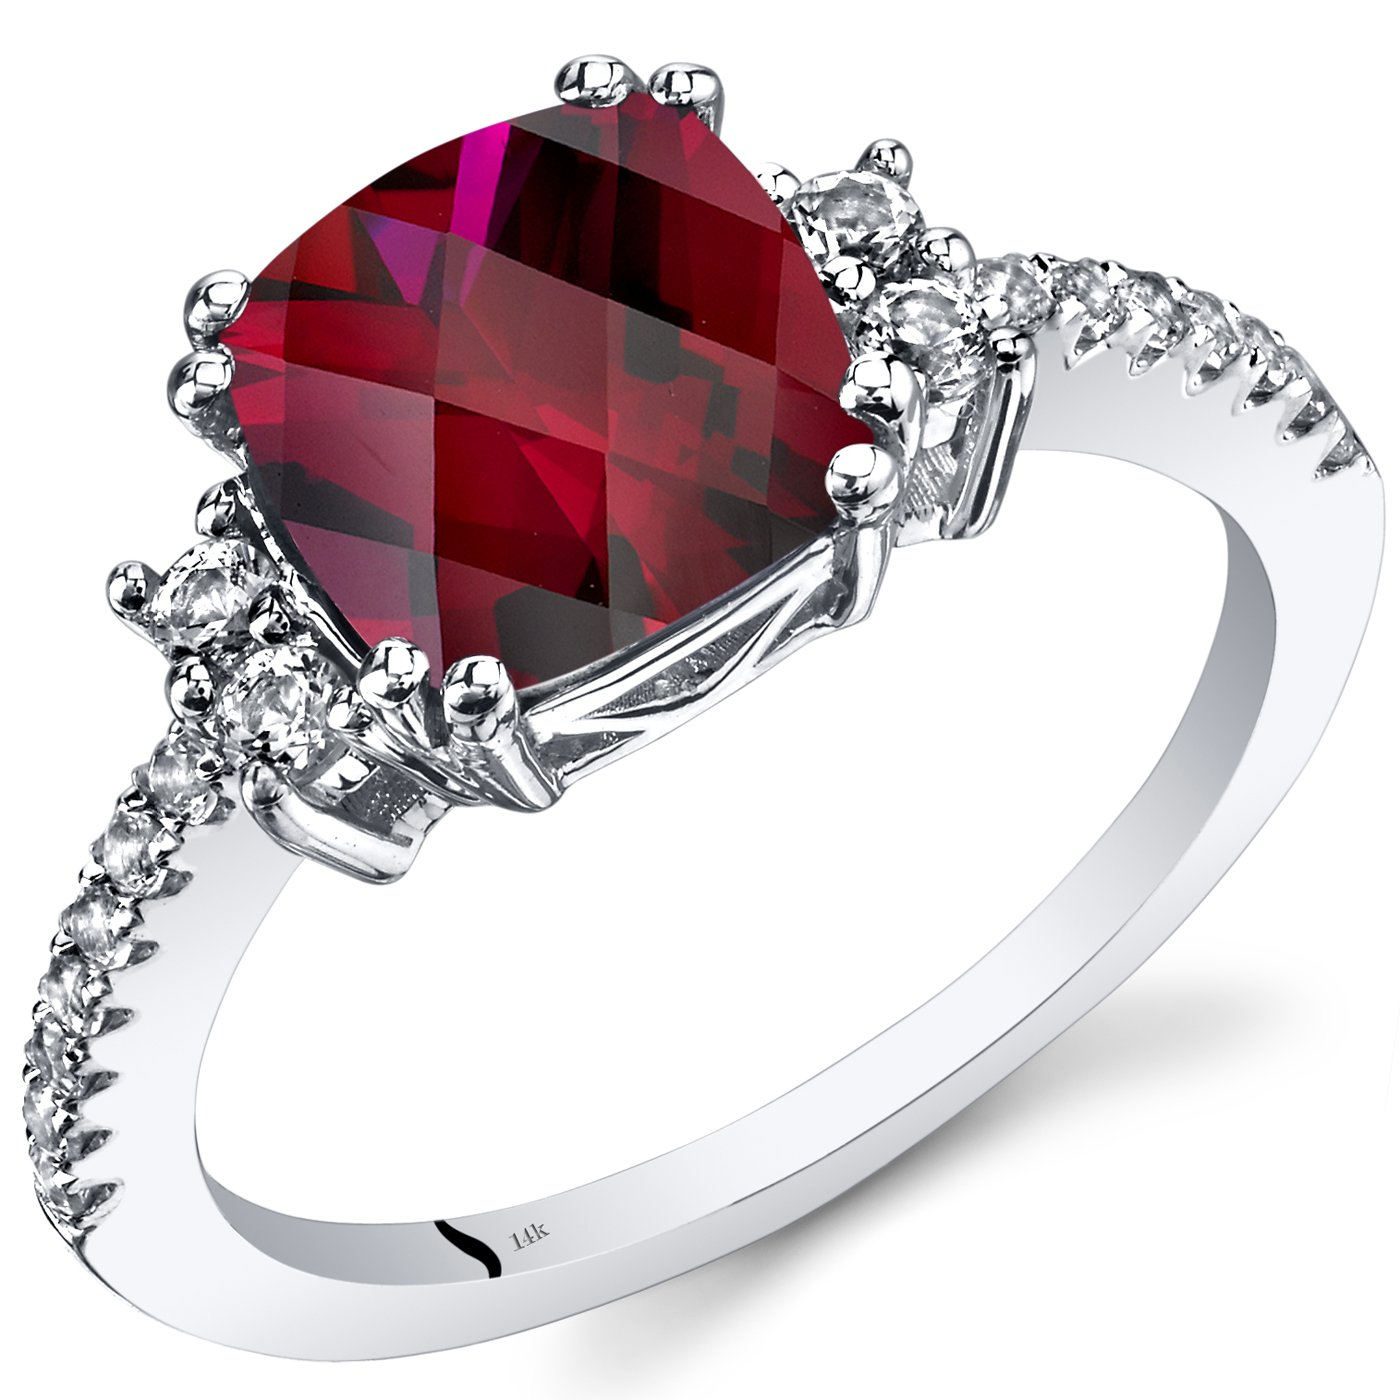 Peora 14K White Gold Created Ruby Ring Cushion Checkerboard Cut 3.00 Carats Sizes 5 to 9